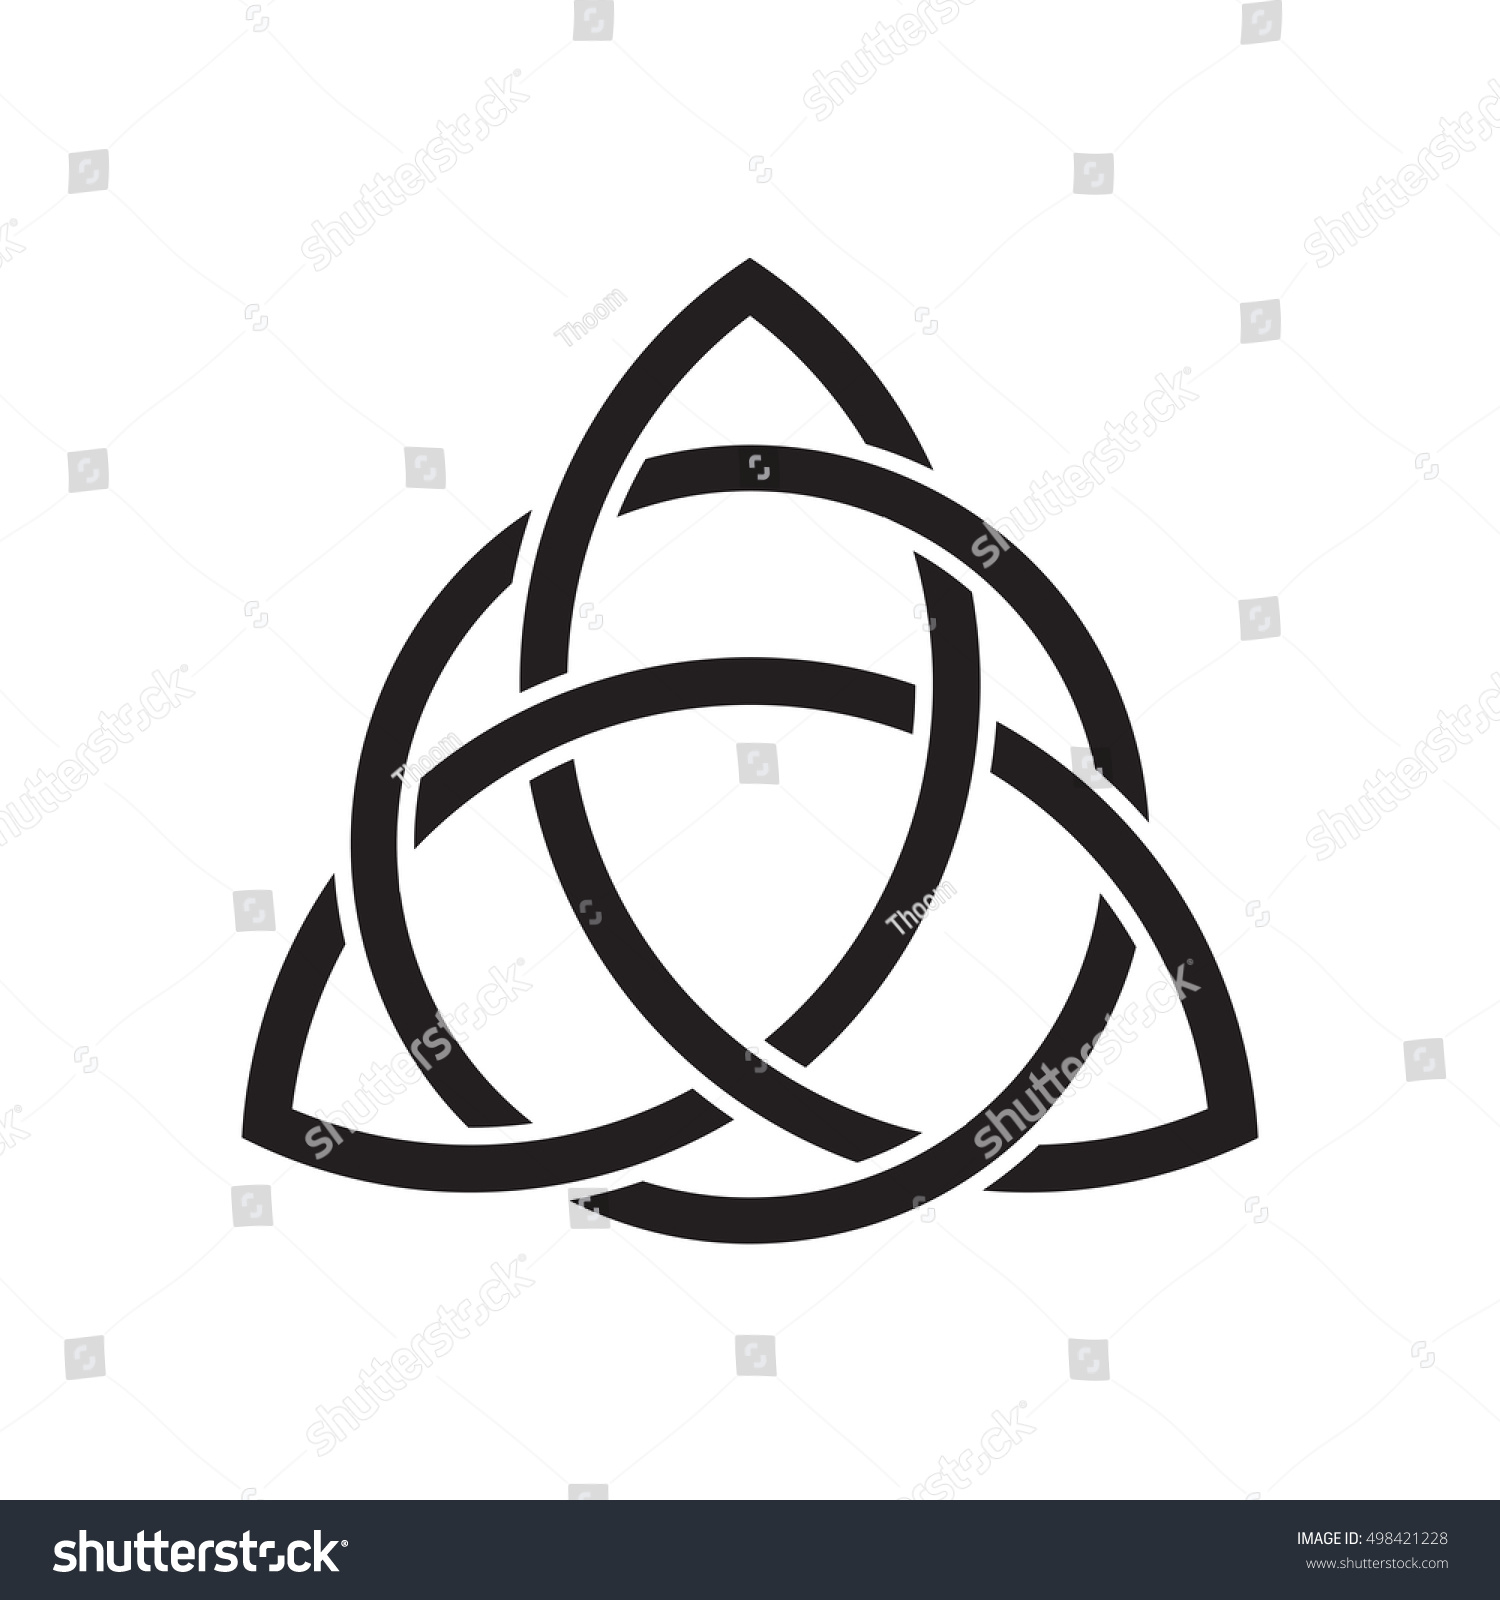 Trinity knot triquetra ancient celtic symbol stock vector ancient celtic symbol of eternity and trinity continuous line interweaving buycottarizona Image collections